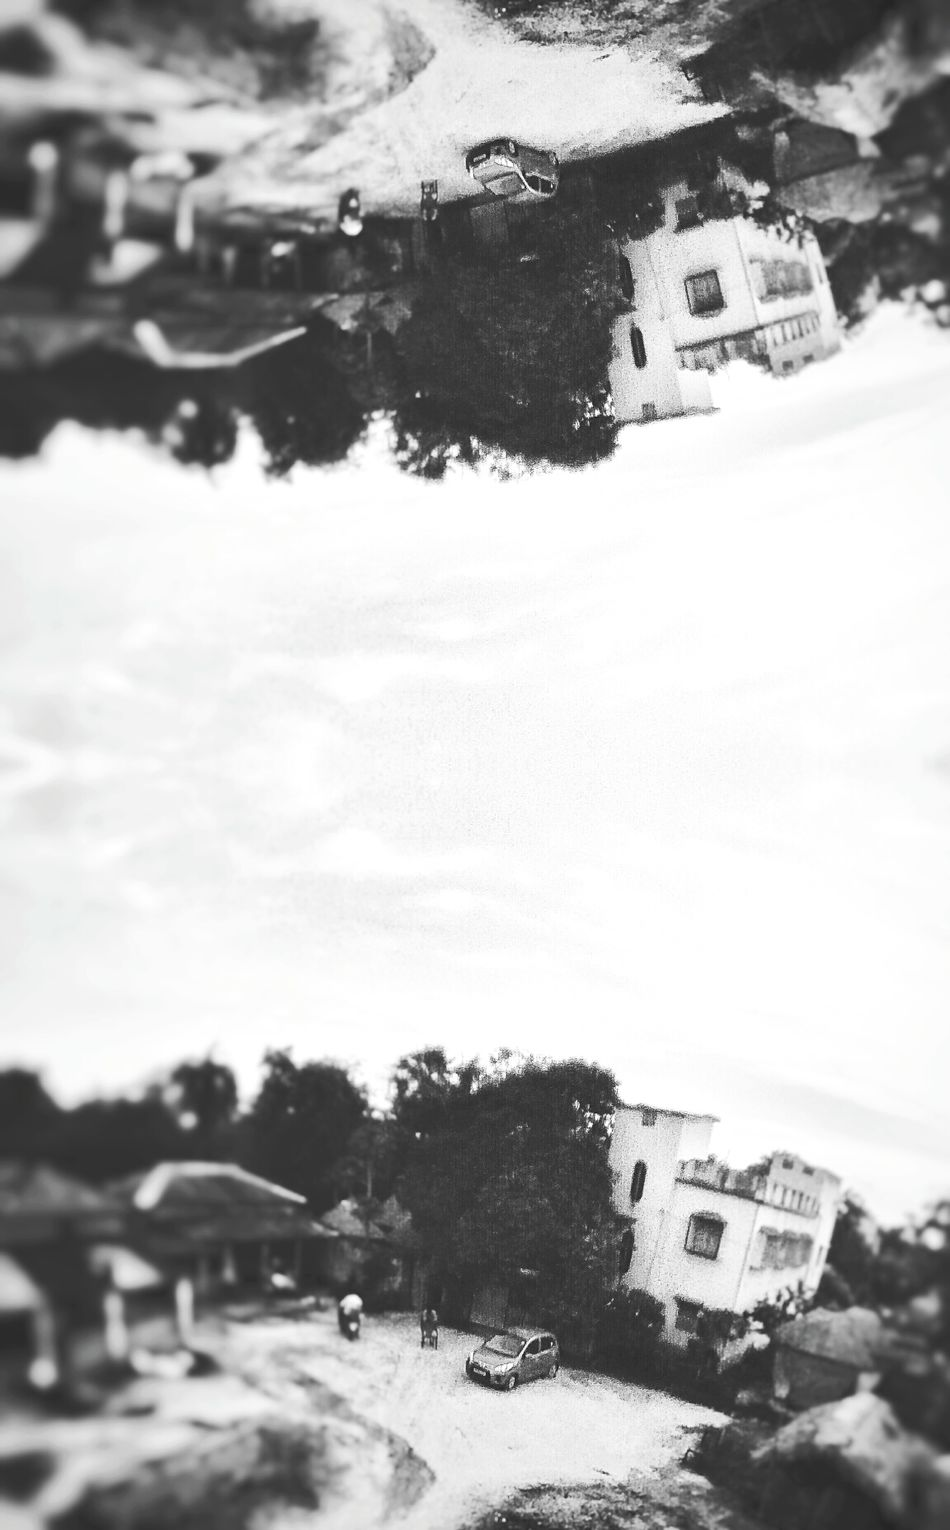 The Innovator Symmetry Incredible India Black & White Landscape Surrealism Upside Down Hello World Summer Fisheye Mirror Little World Up Mobile Photography Abstract Showcase June The Mix Up Monochrome Photography